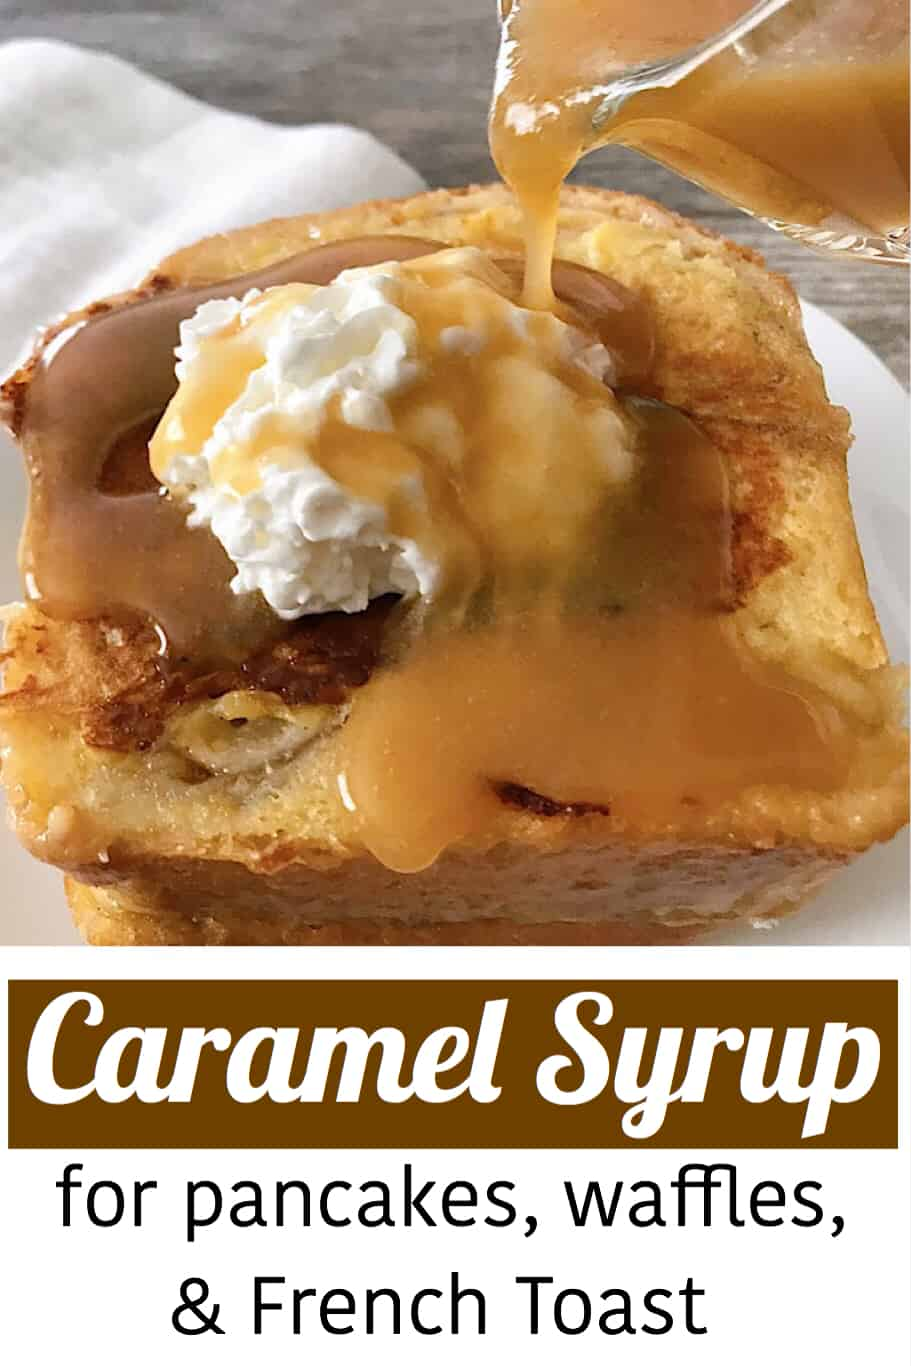 Caramel Syrup for pancakes, waffles, & french toast